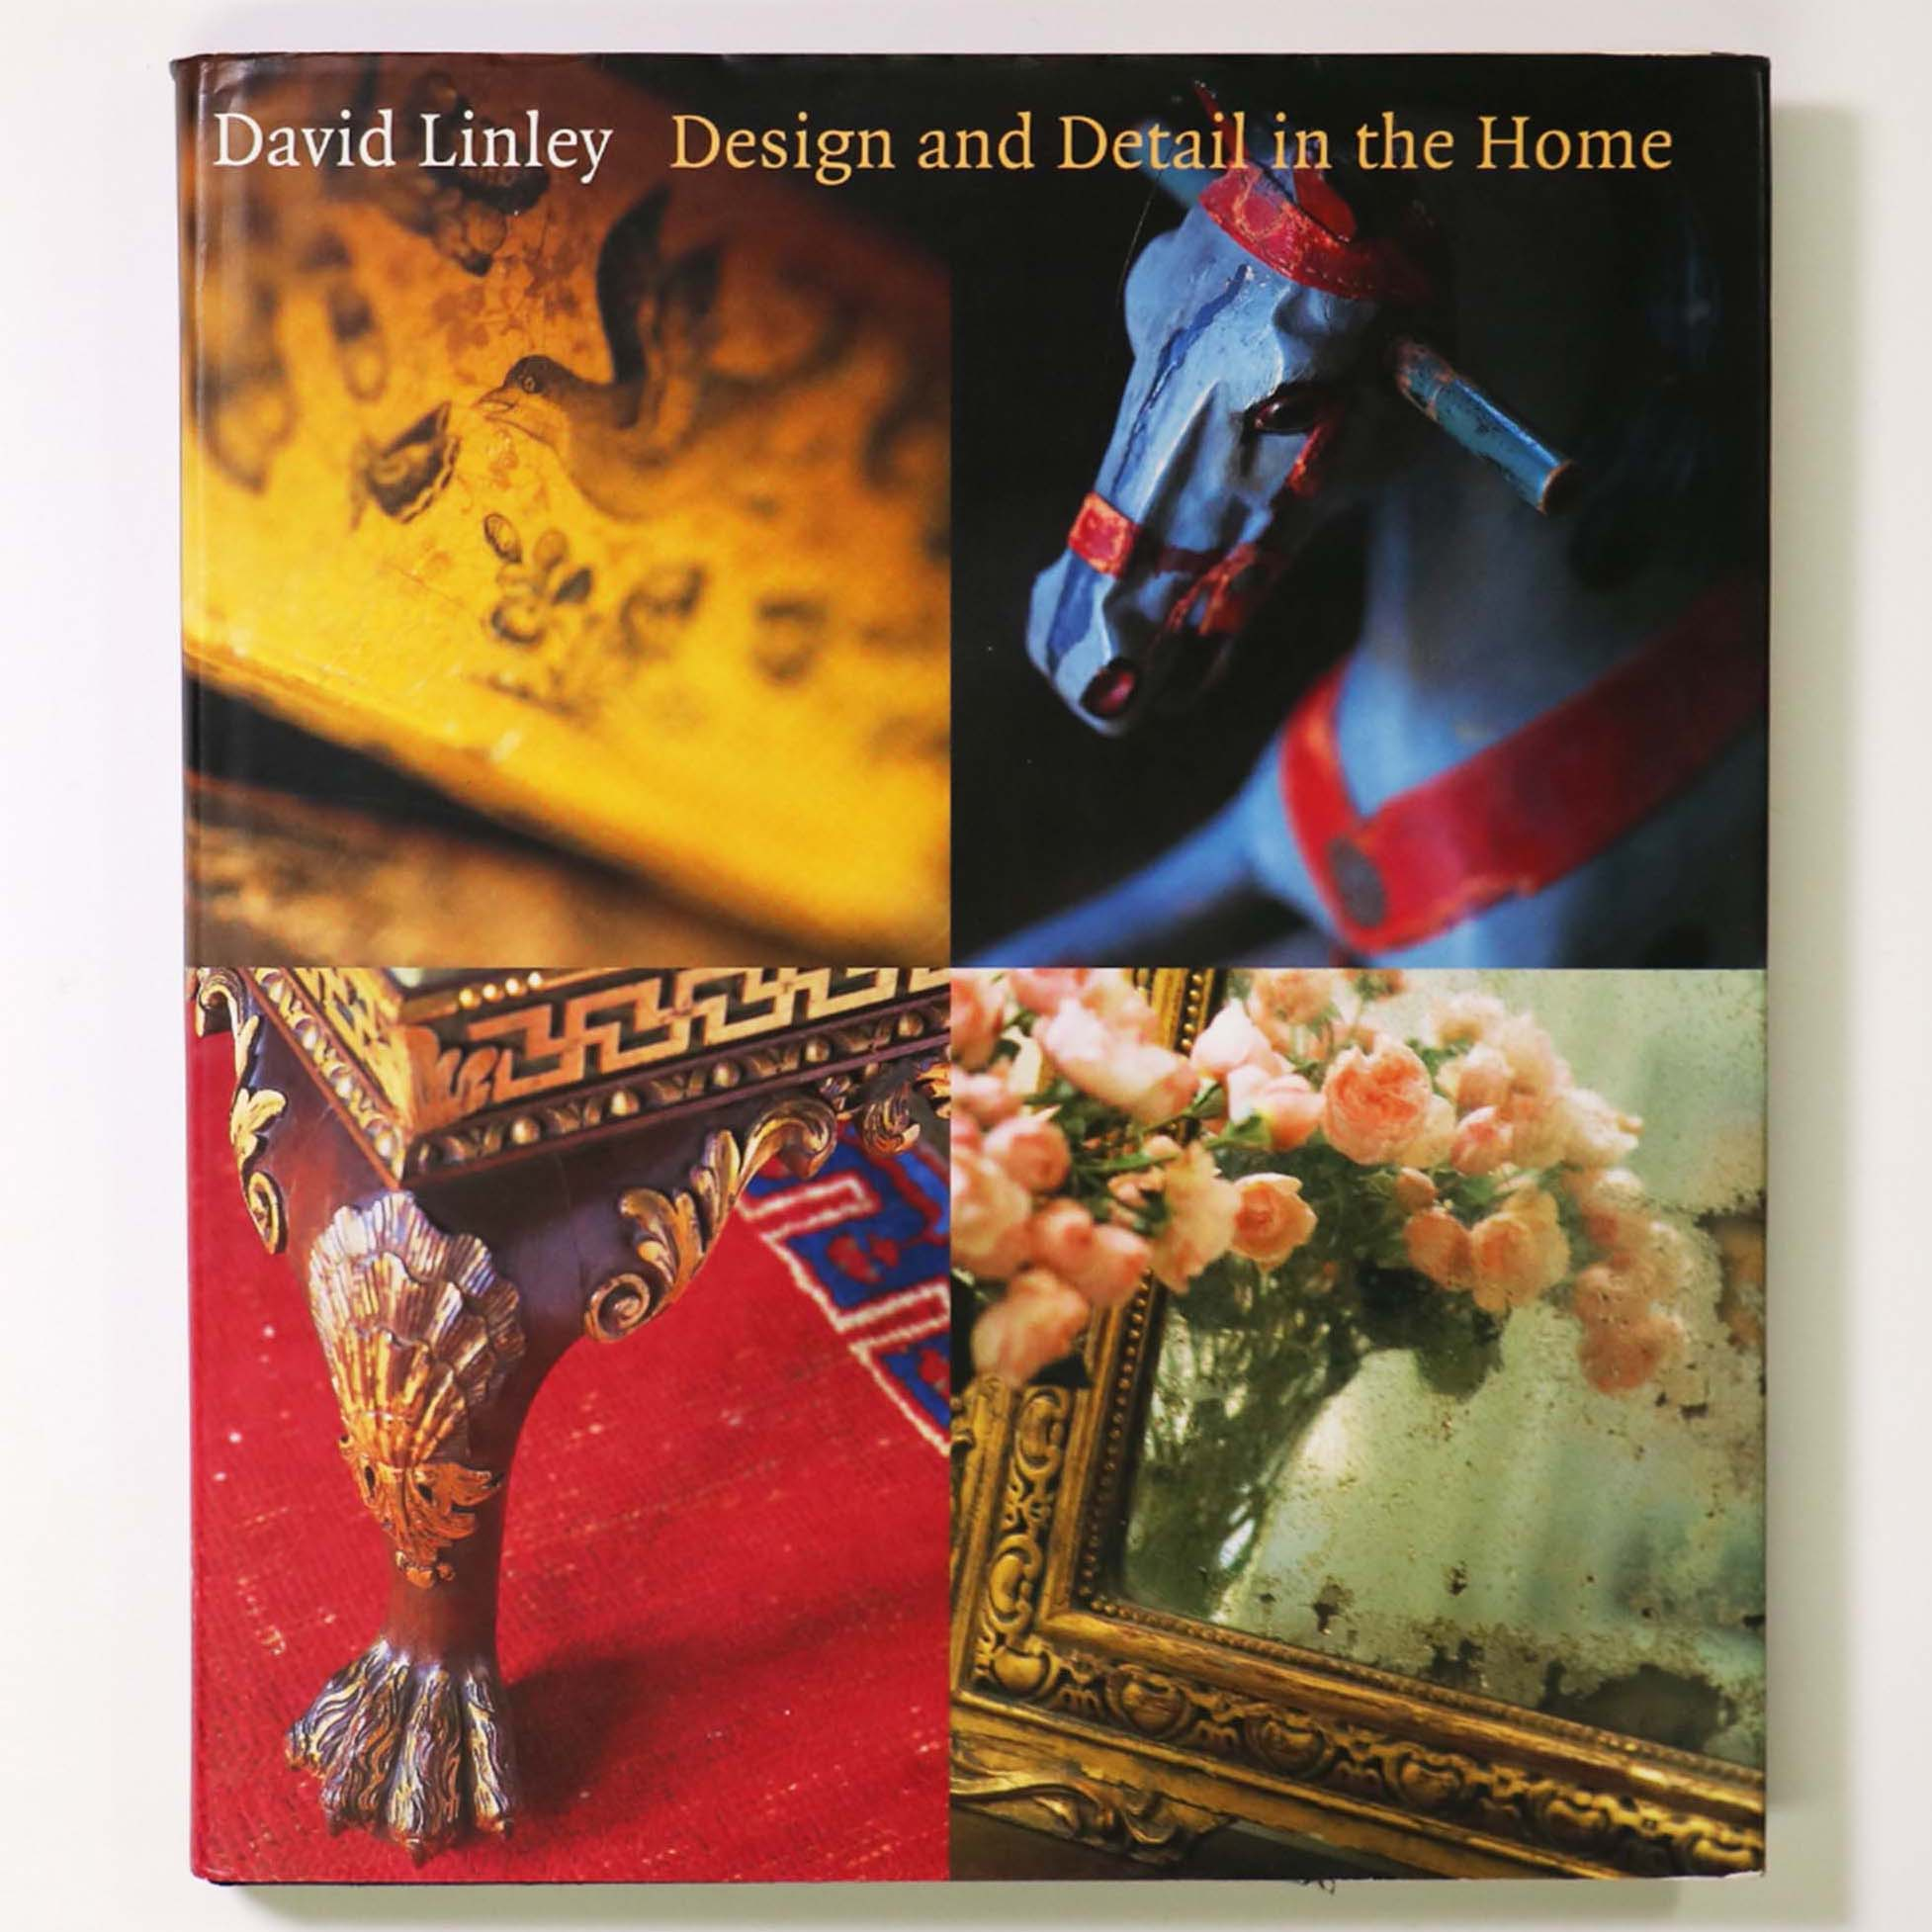 David Linley: Design and Detail in the Home